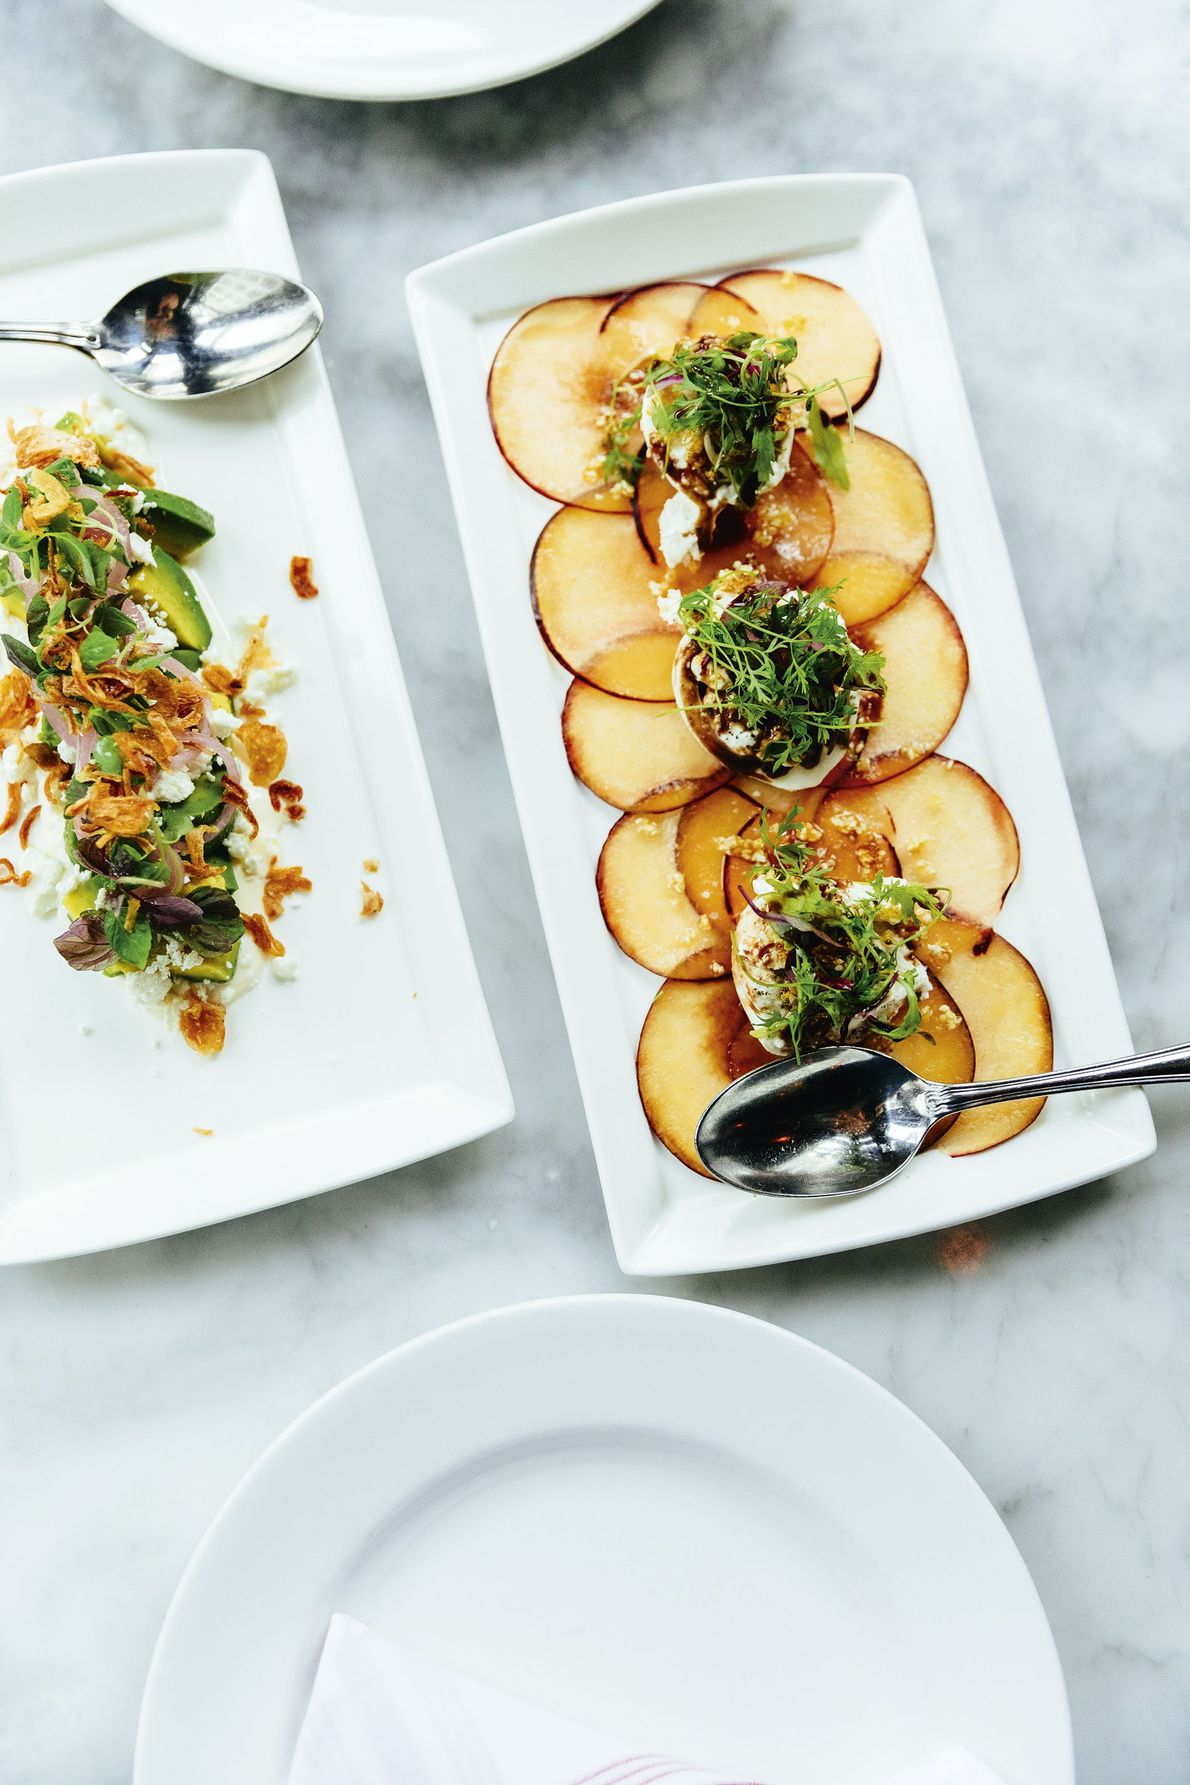 Avocado salad with feta and crispy shallots next to a burrata cheese plate with stone fruit, ...